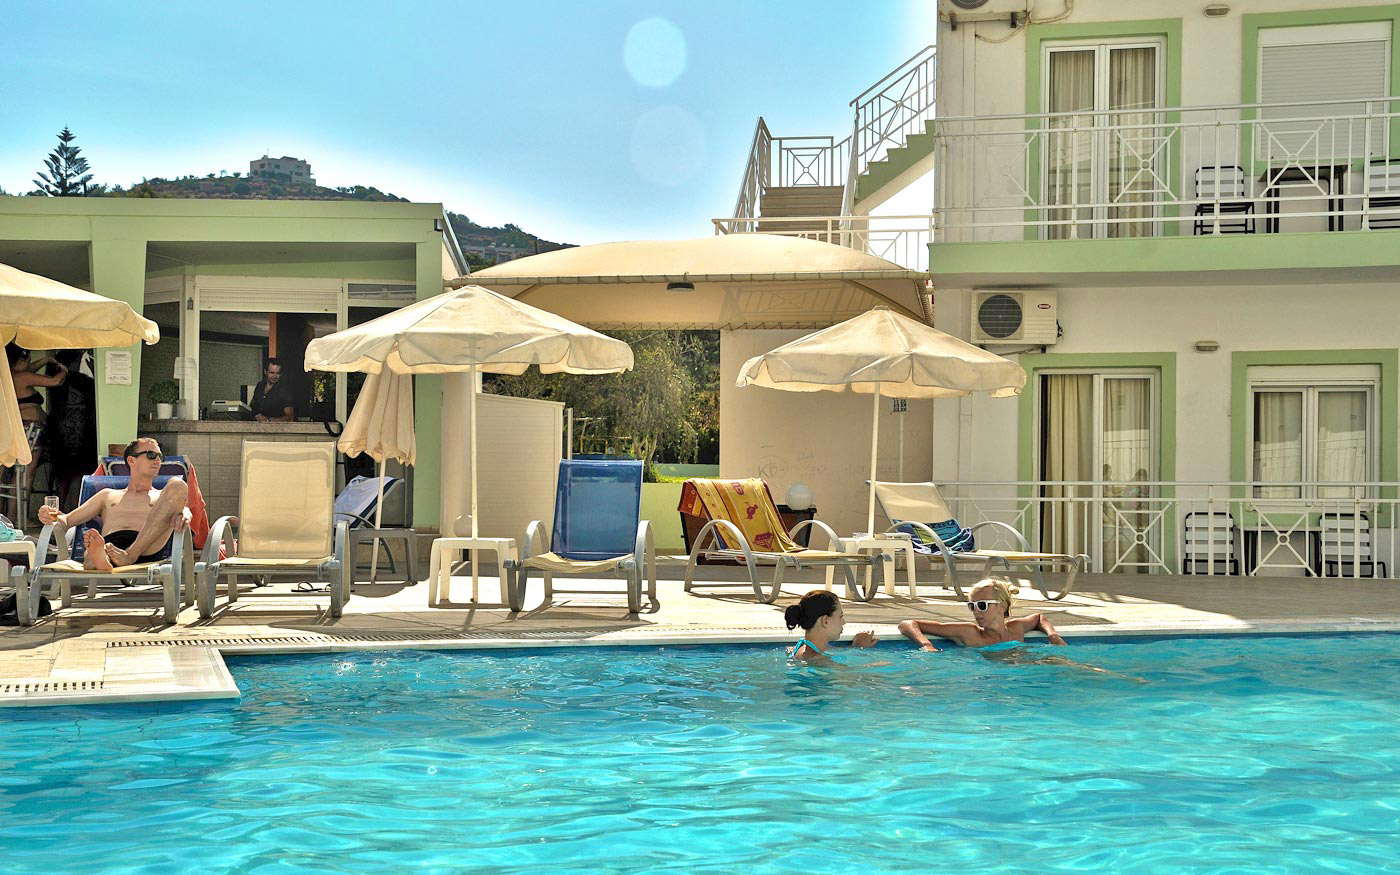 Nicolas villas in agia pelagia heraklion - Swimming pool area ...